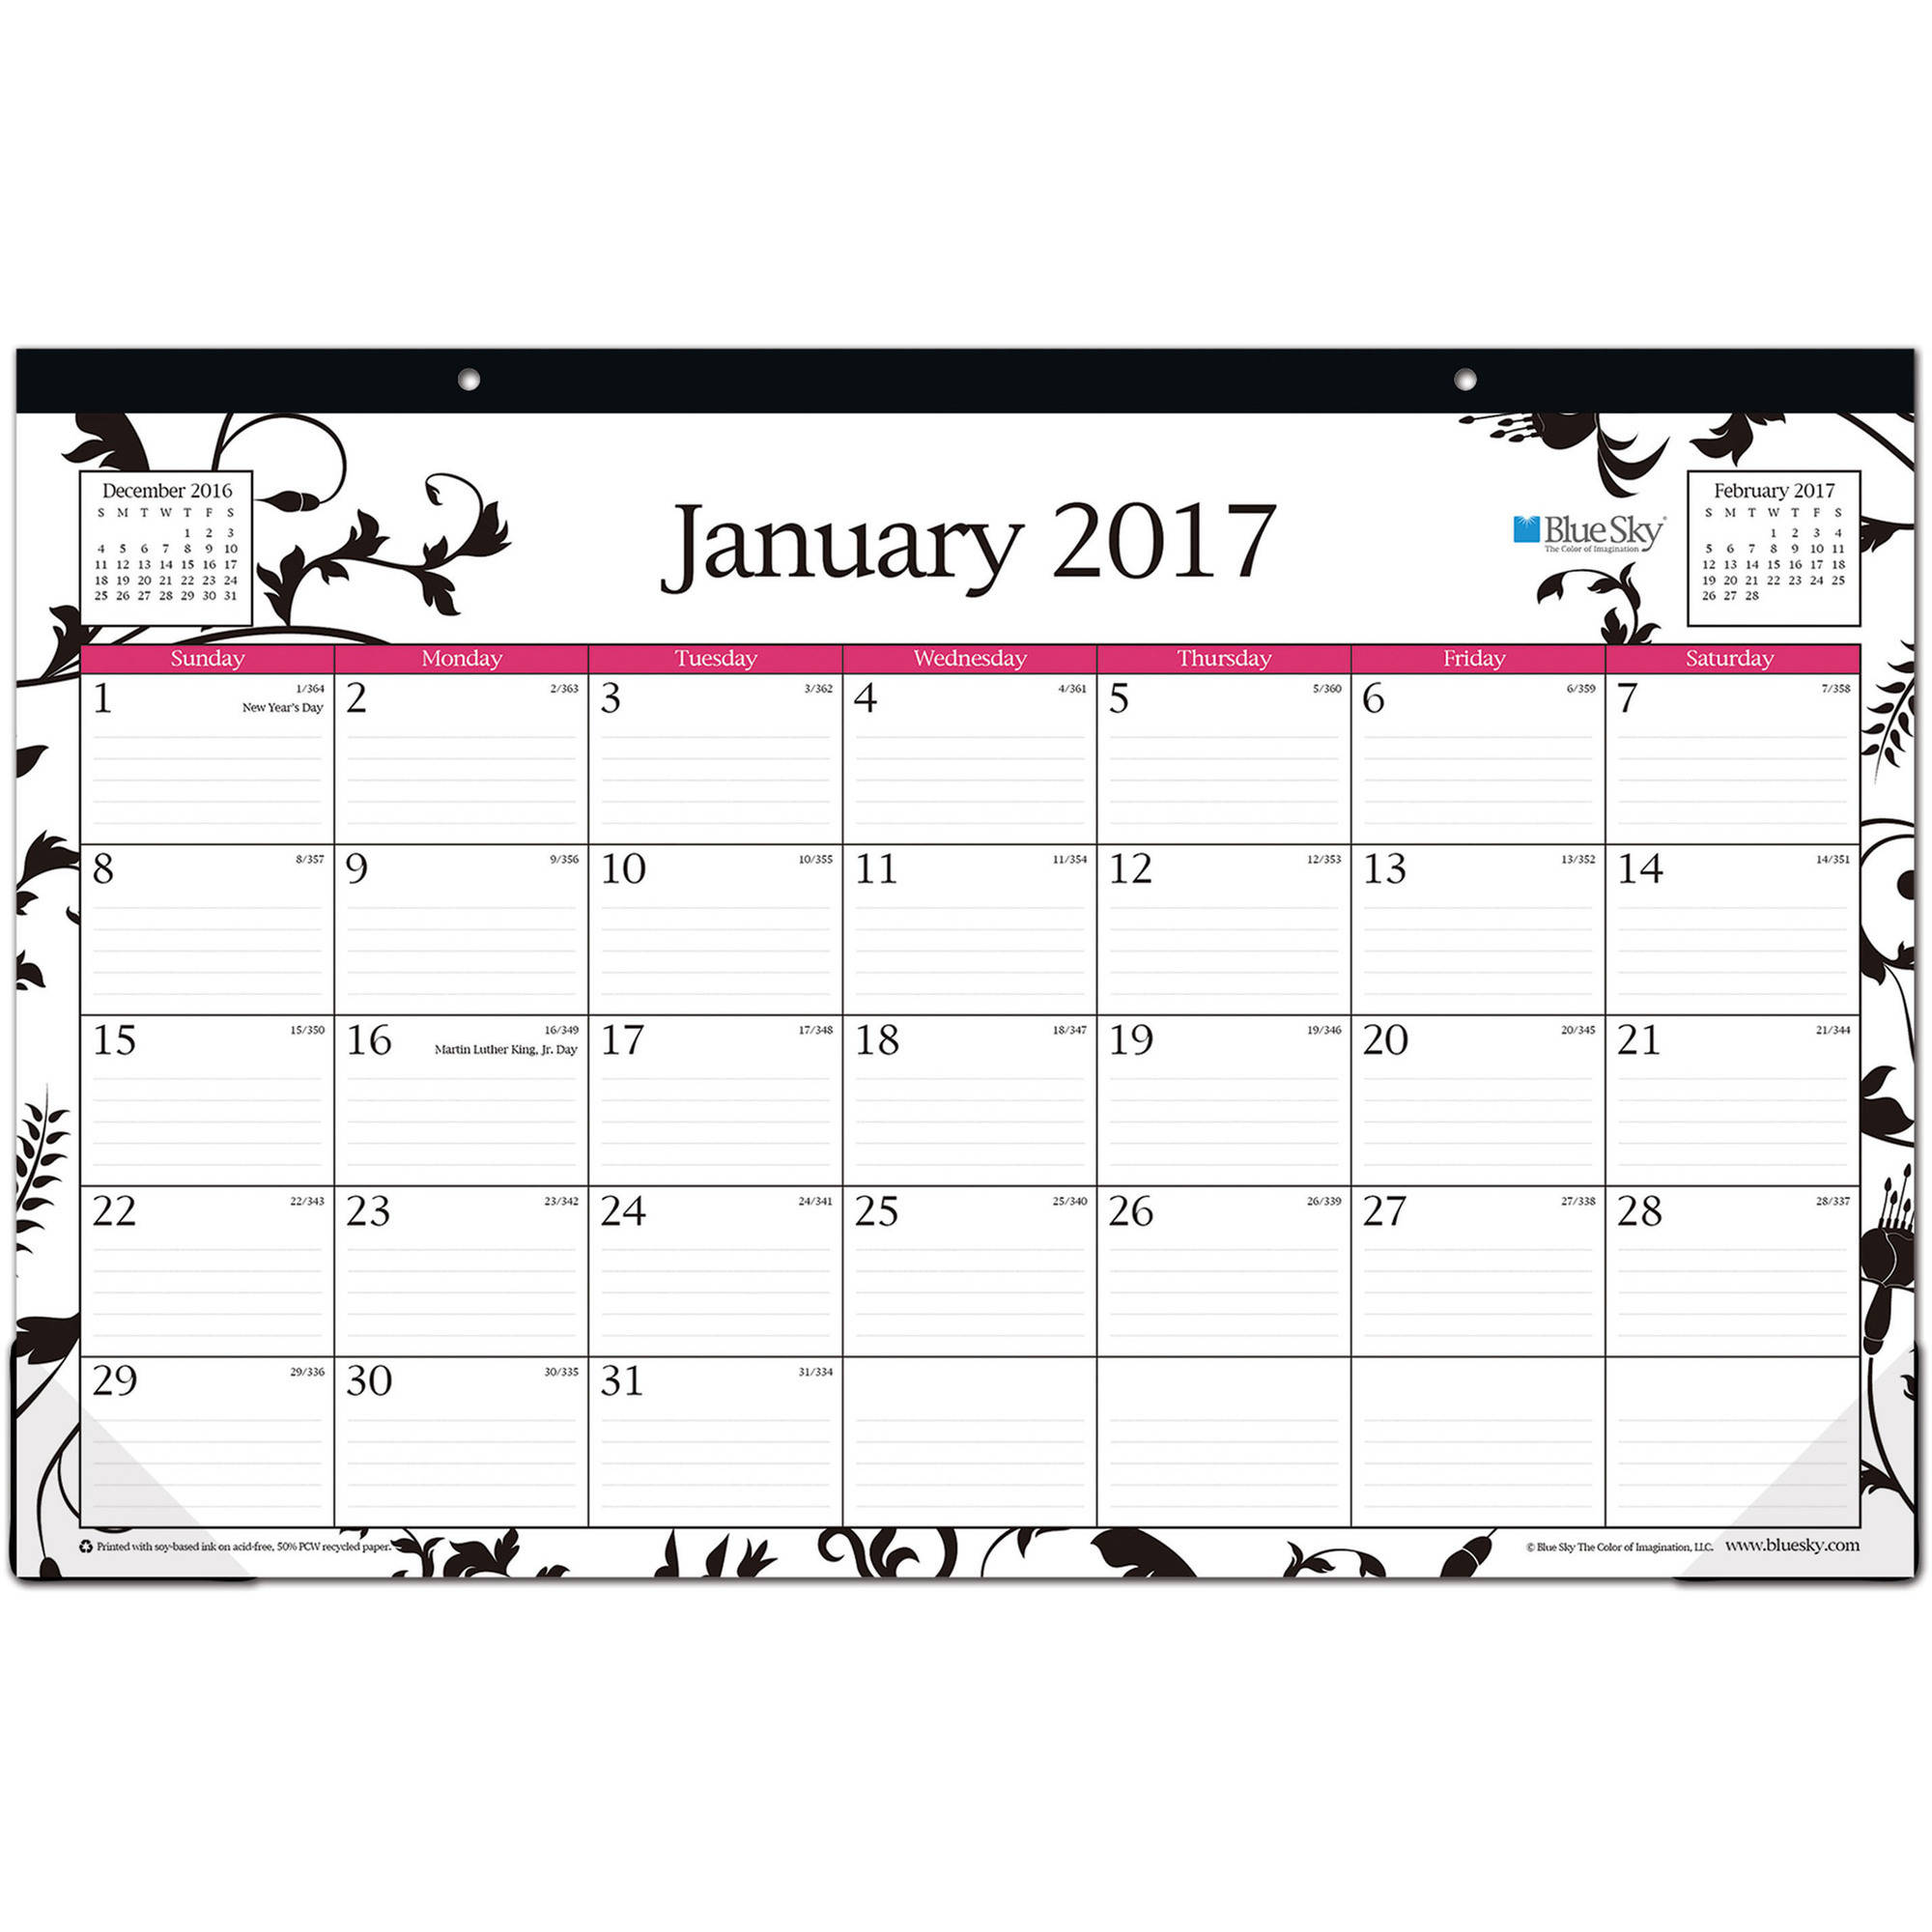 "Blue Sky Analeis 17"" x 11"" Monthly Desk Pad Calendar, 2017"